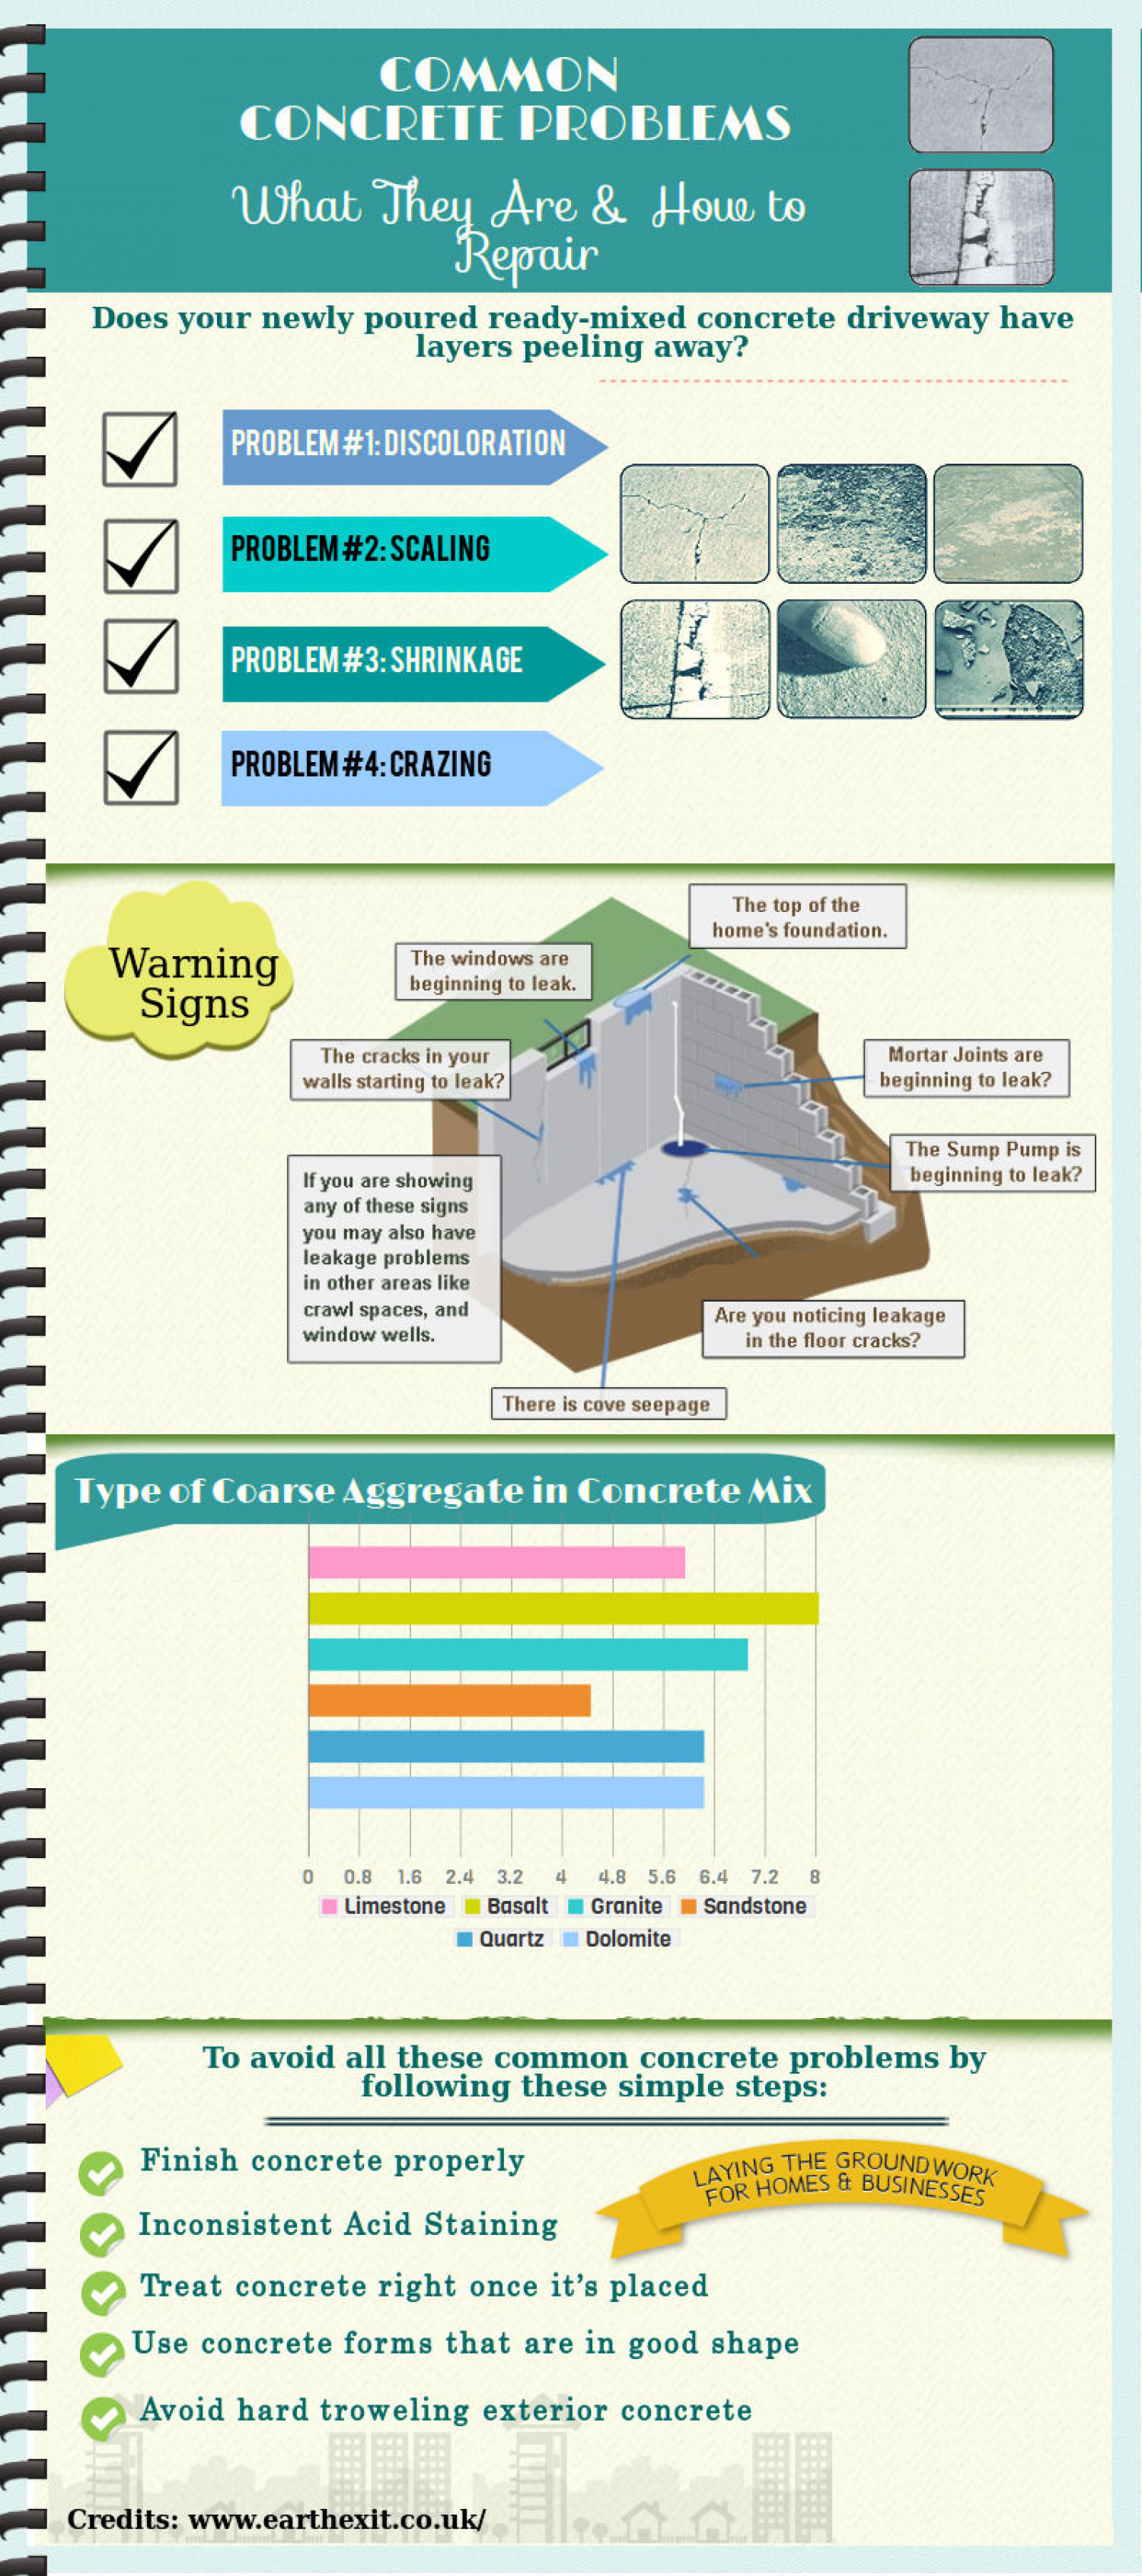 Common Concrete Problems Infographic